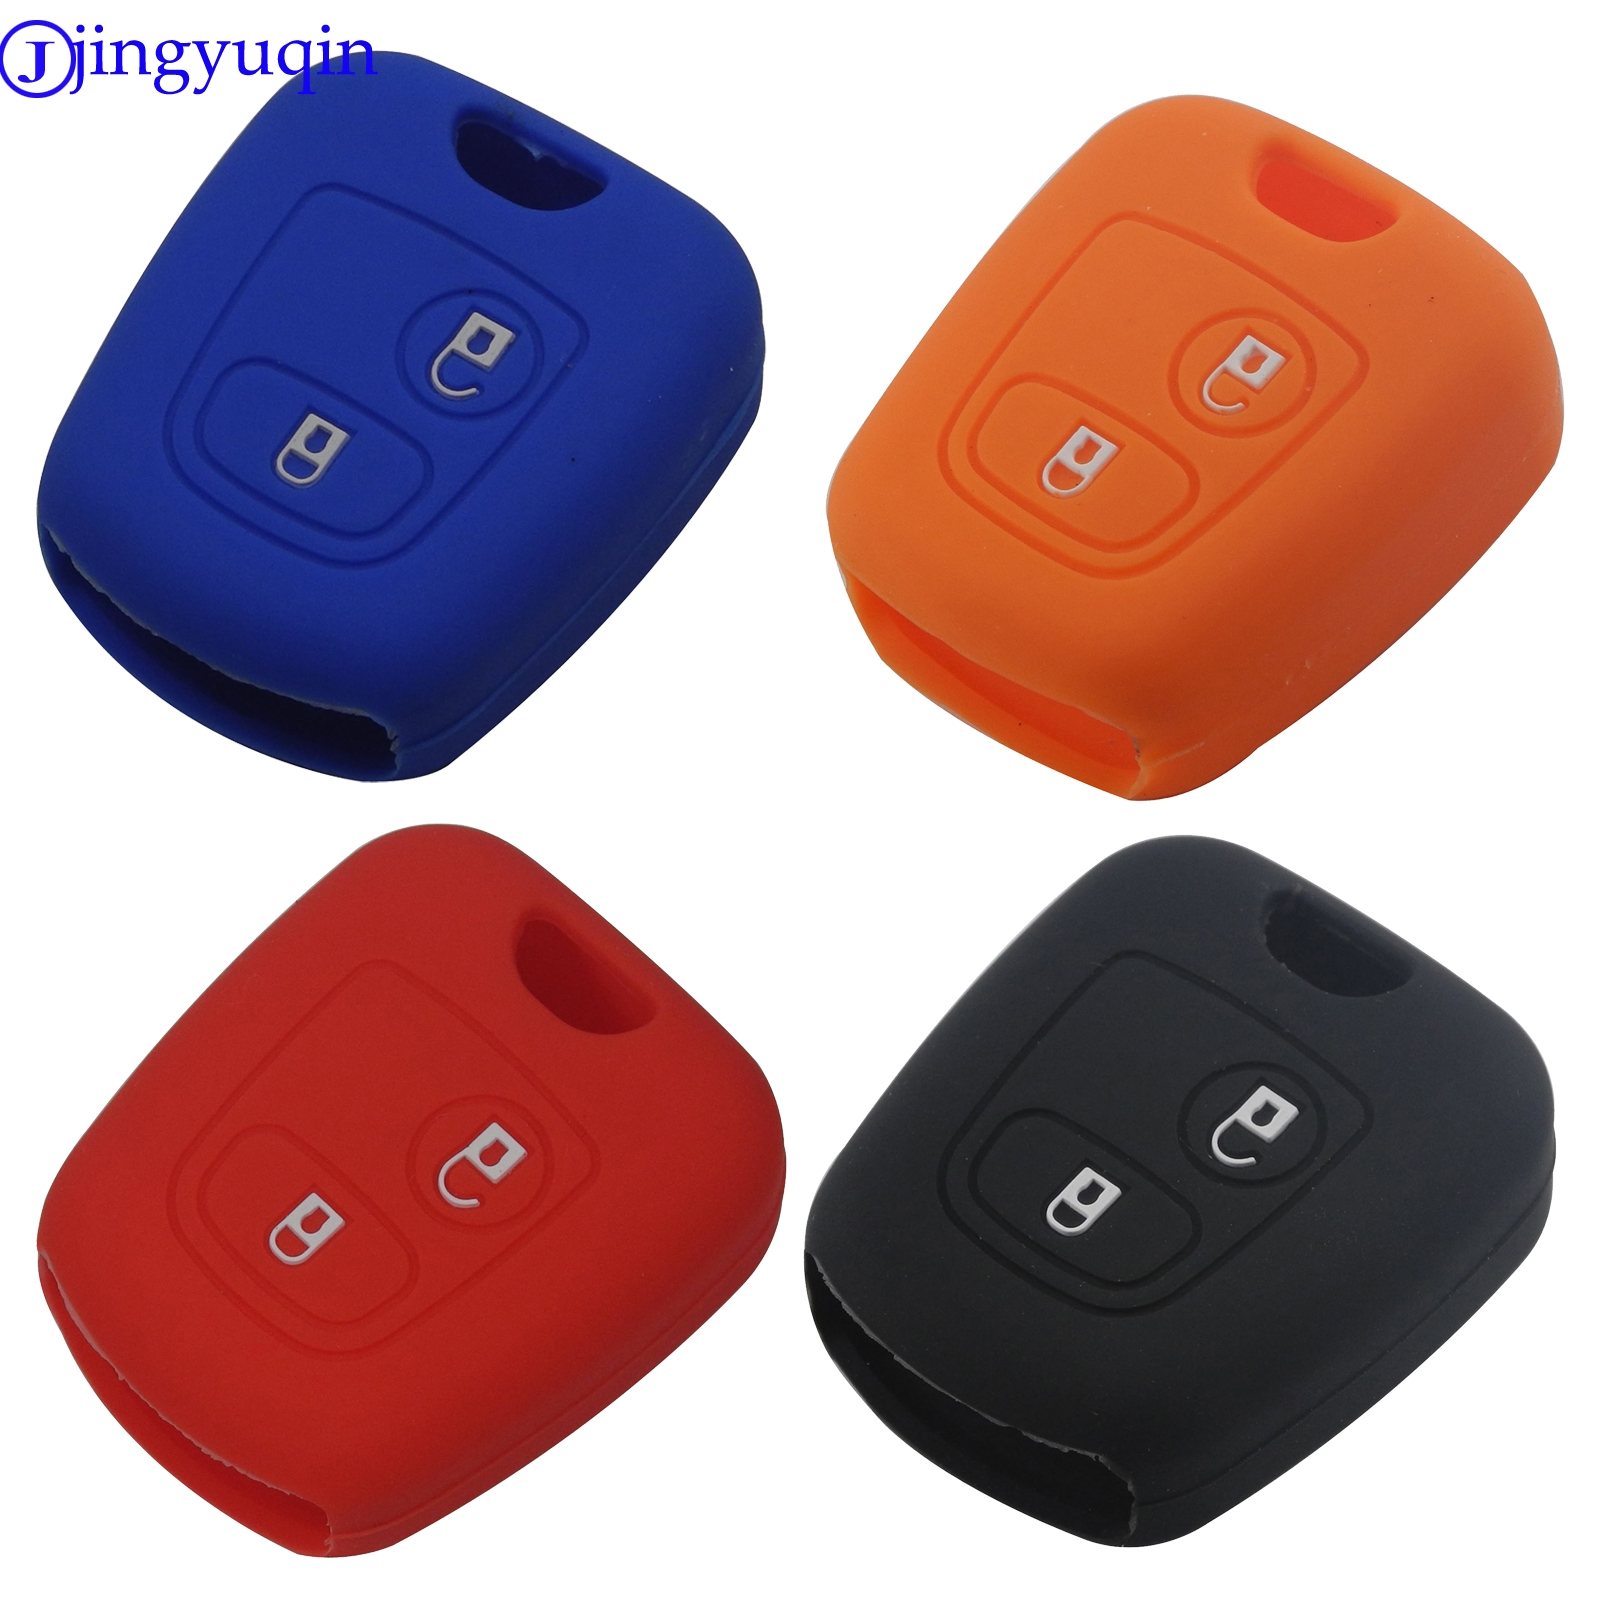 jingyuqin New Remote Car Key Silicone Rubber Case Cover For Peugeot 107 206 307 207 408 Key Protector Holder Shell 2 Buttons image